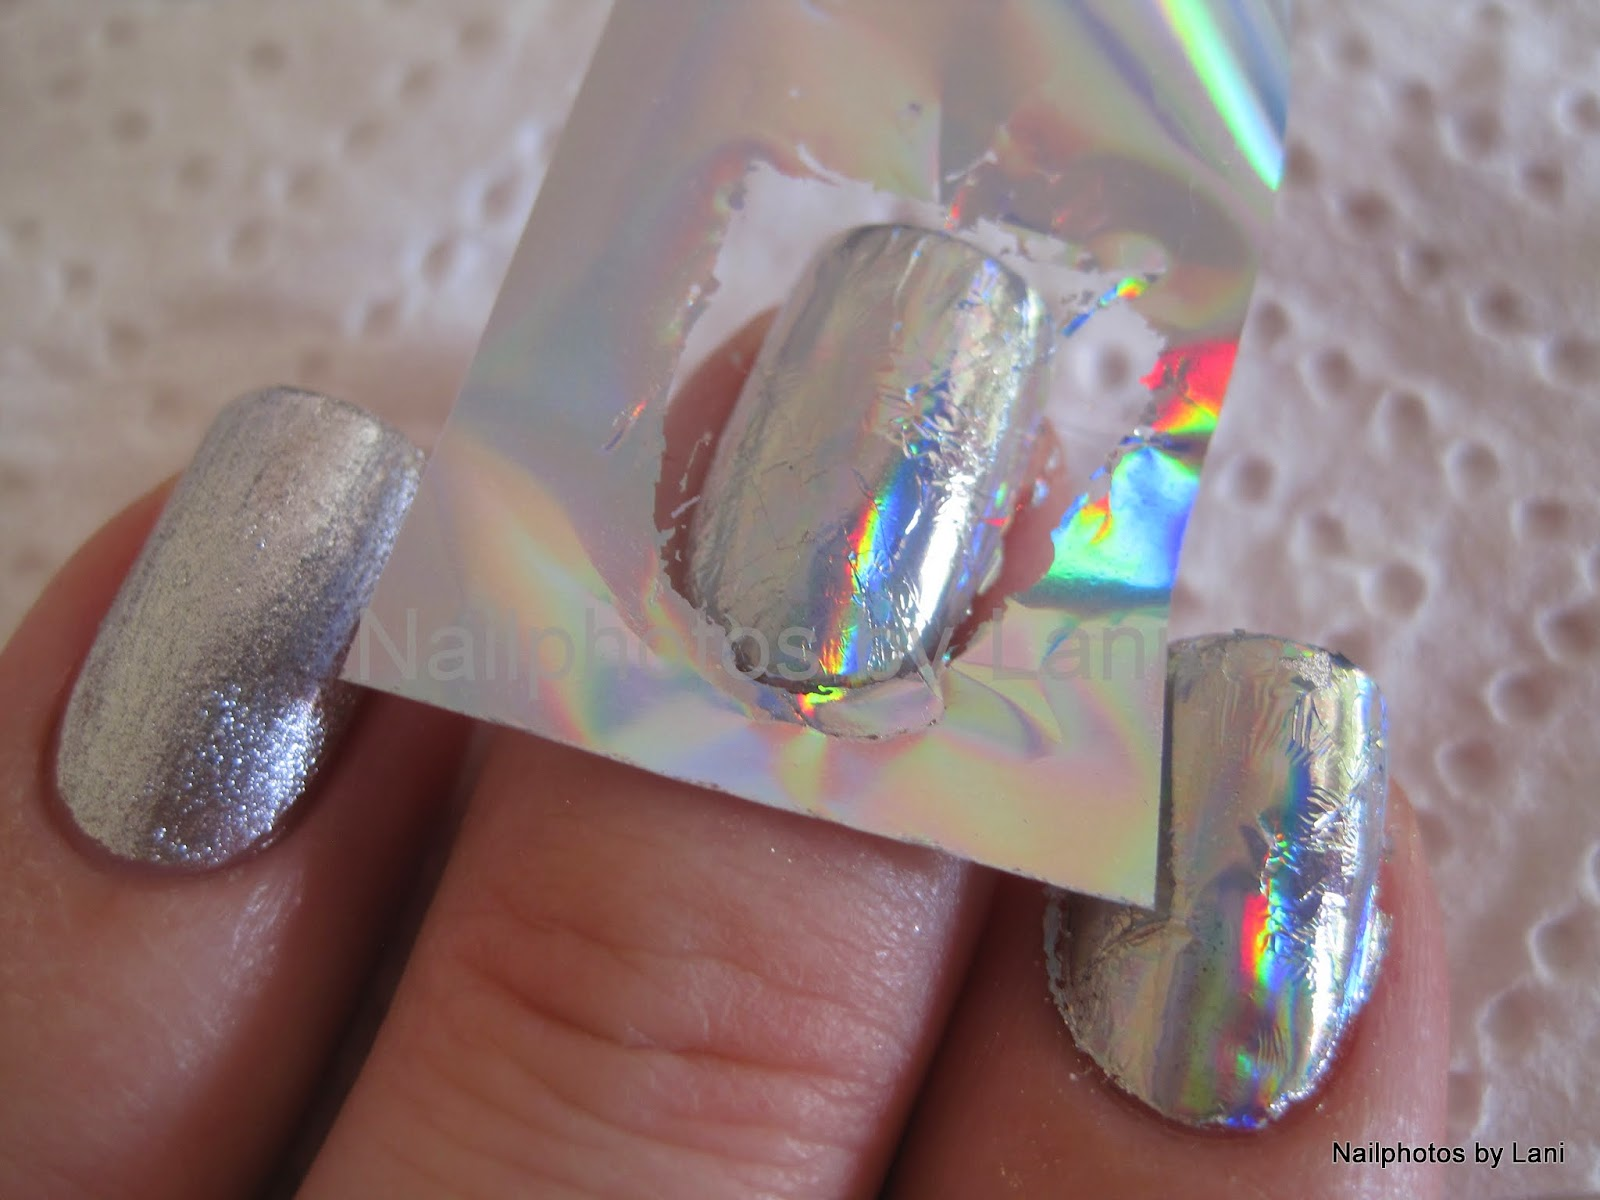 Nailphotos by Lani: Holographic Nail Foil from KKCenterHk, and how ...